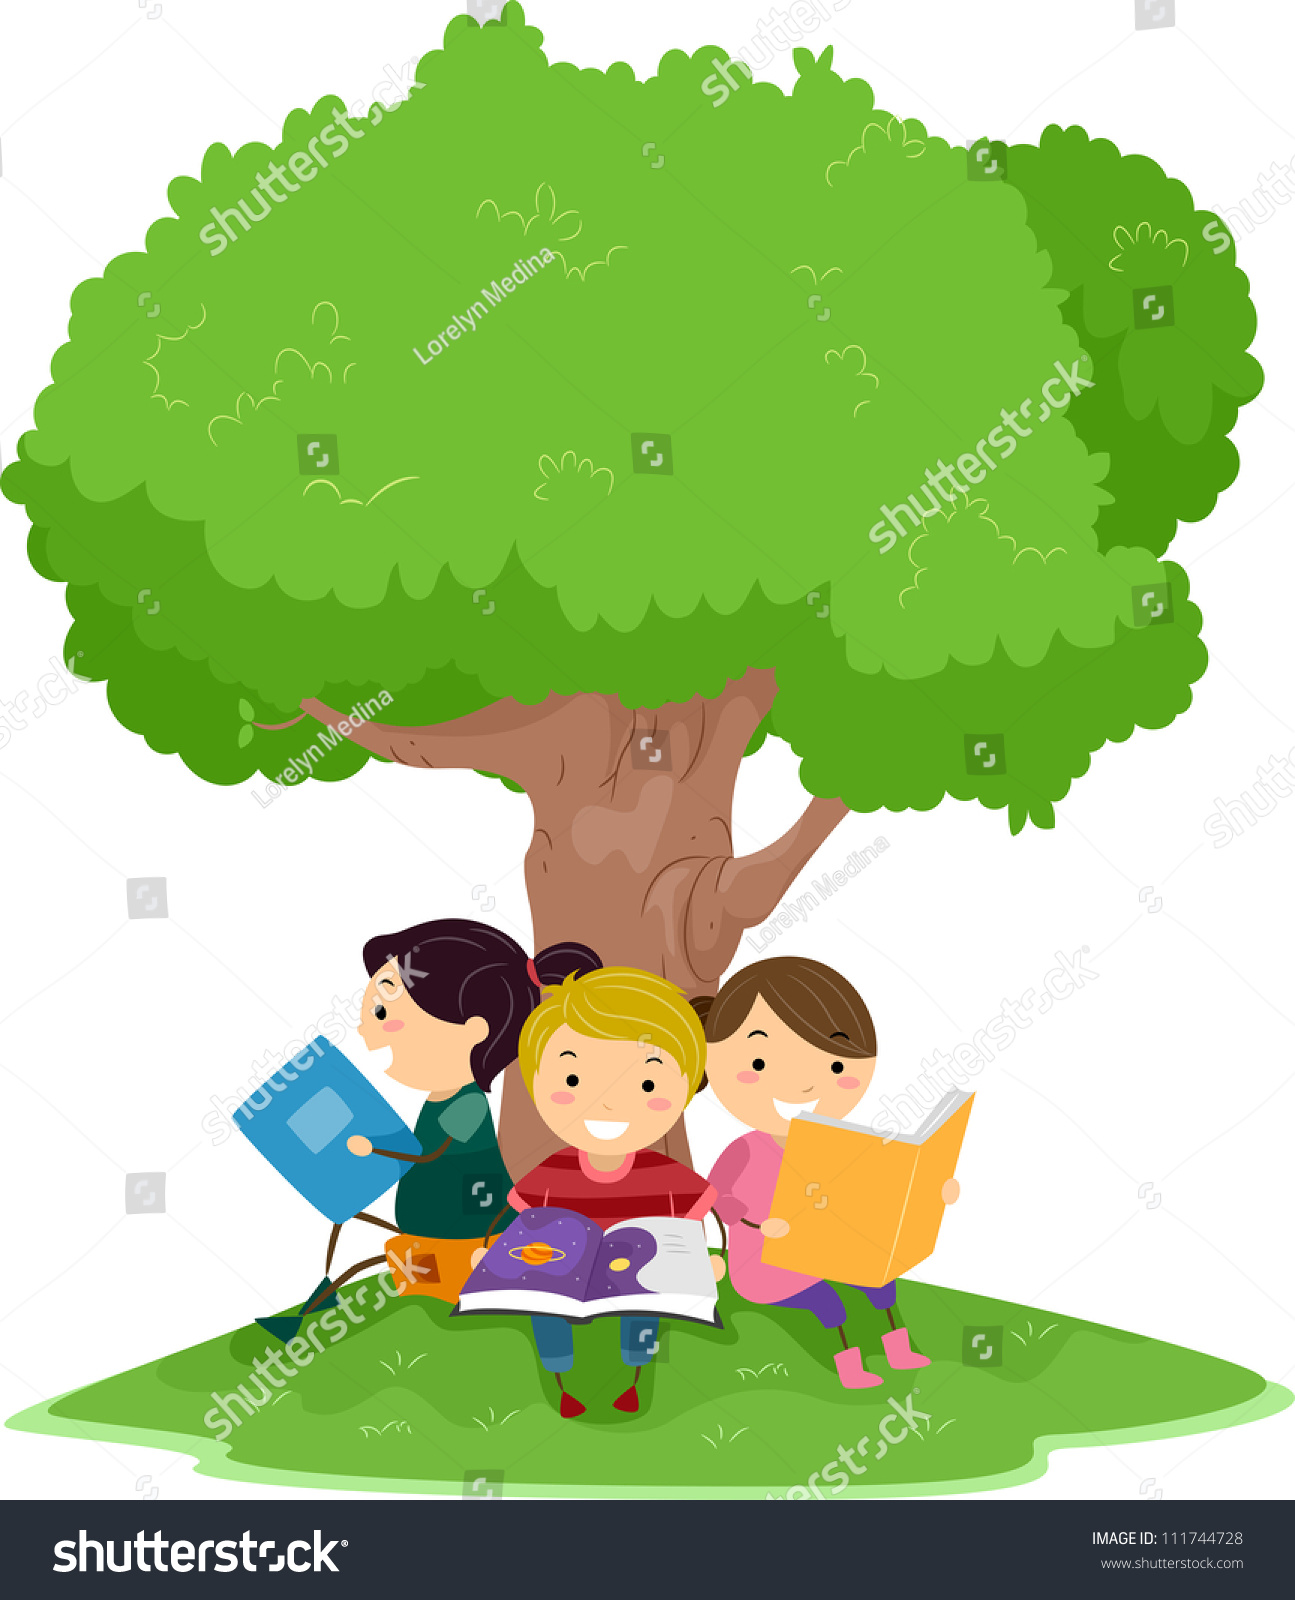 oxford reading tree clip art download - photo #33